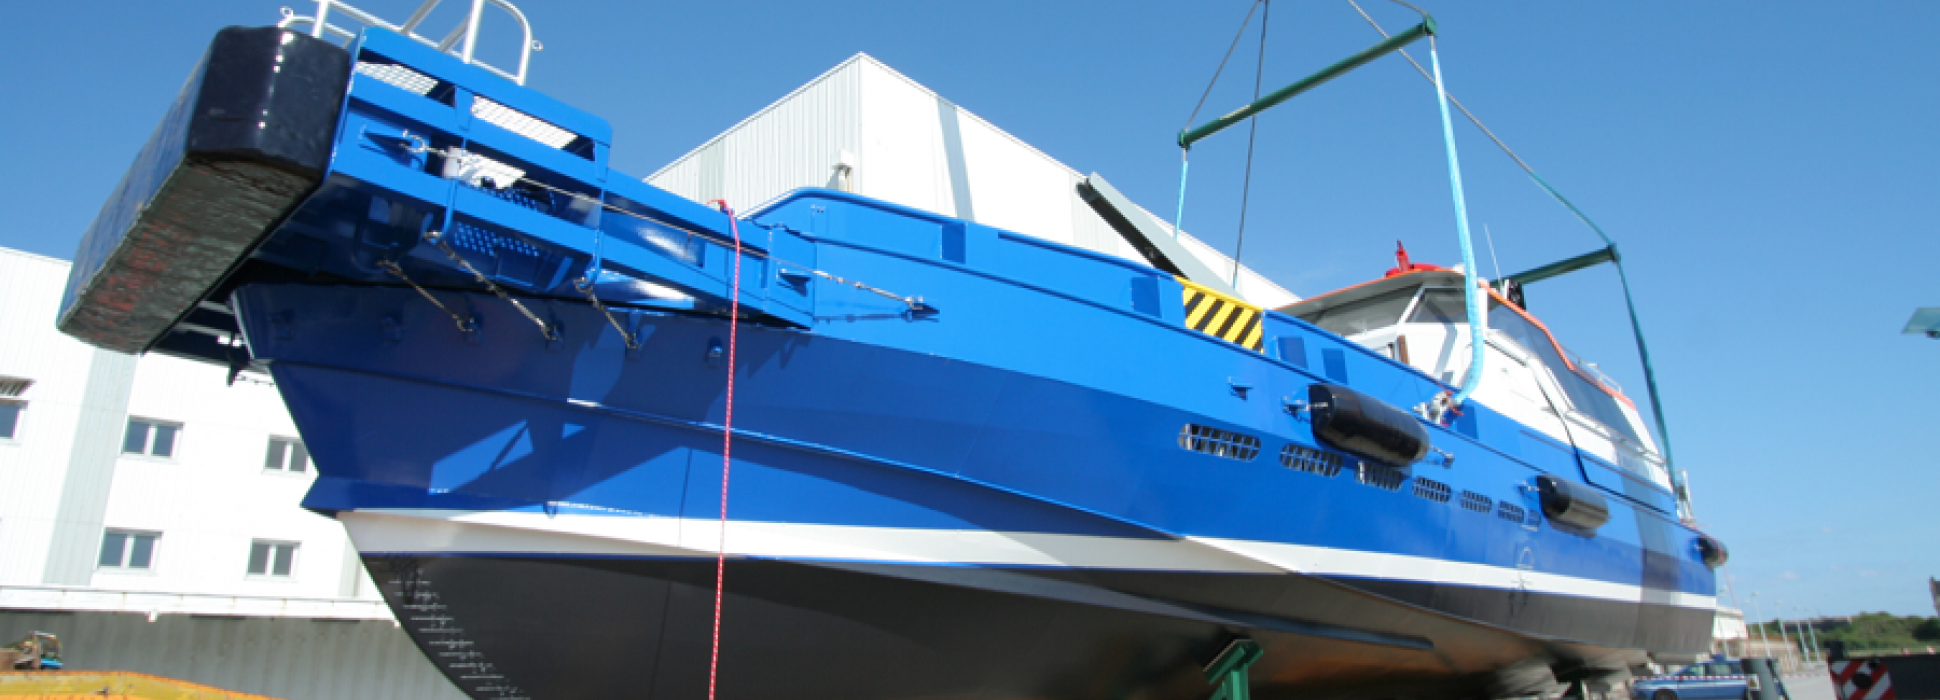 The Cherbourg shipyard Efinor Allais has received new orders from the Bourbon Group